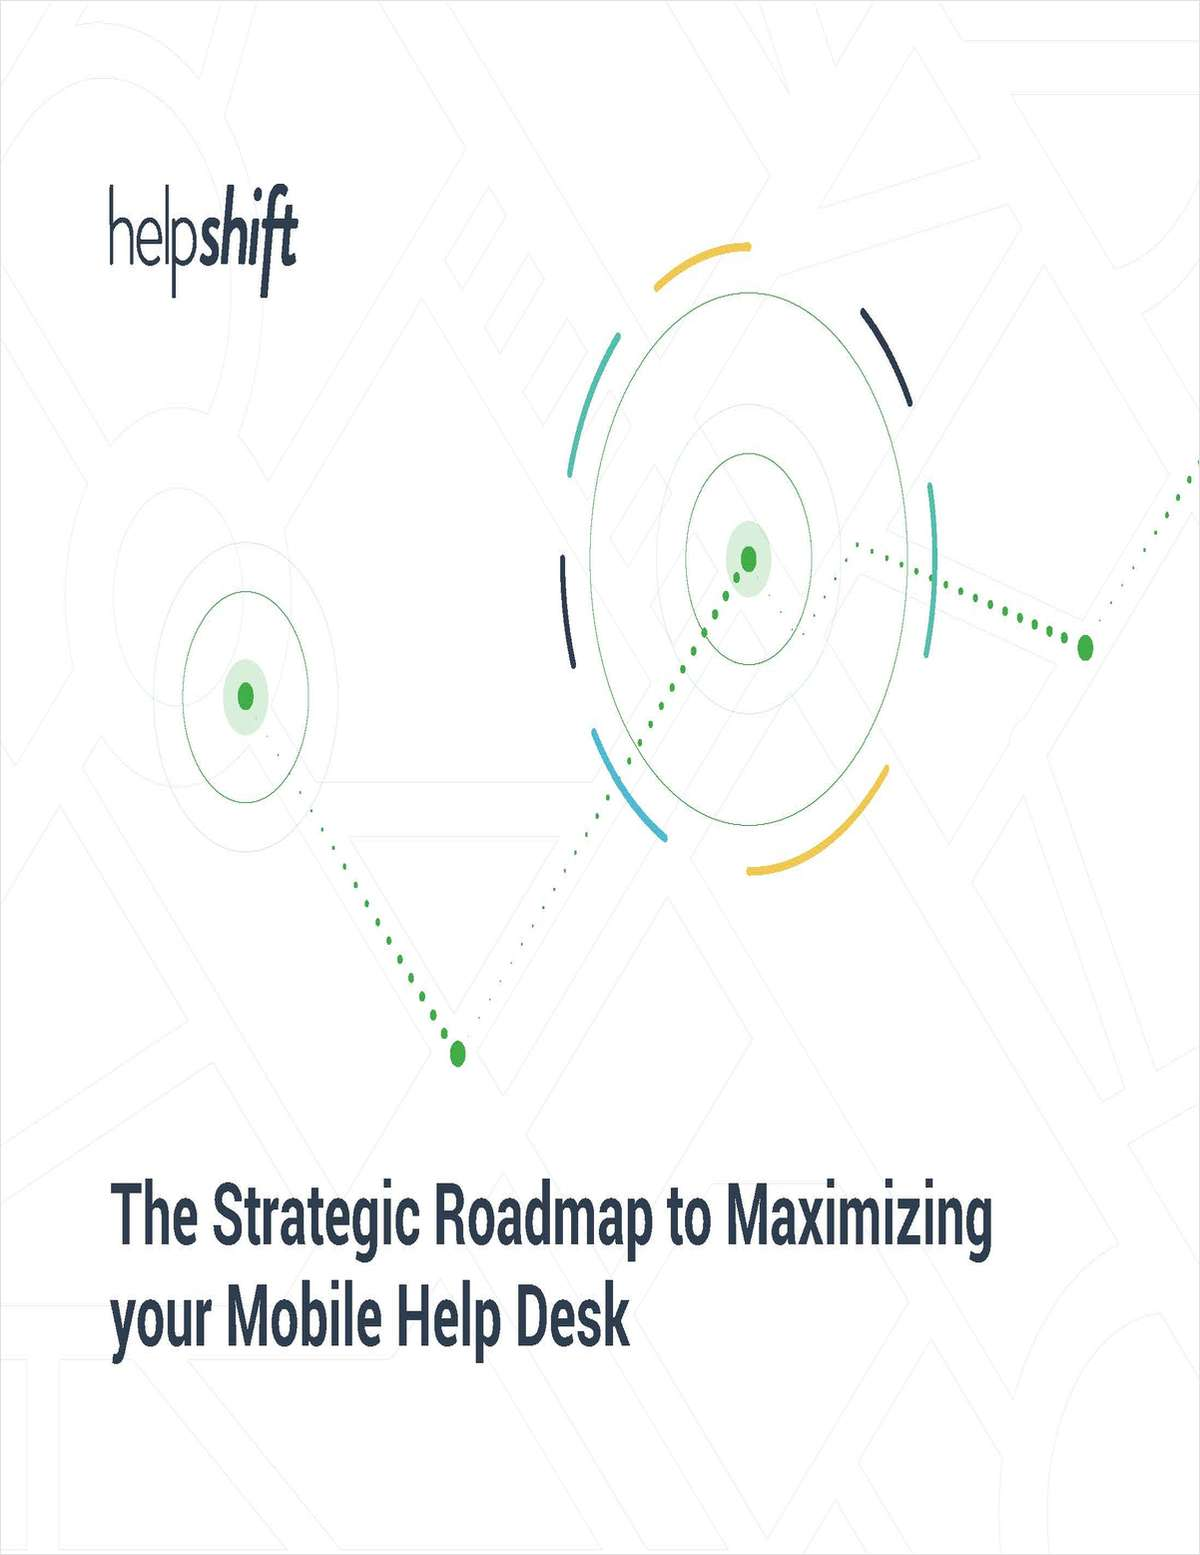 The Strategic Roadmap to Maximizing Your Mobile Help Desk